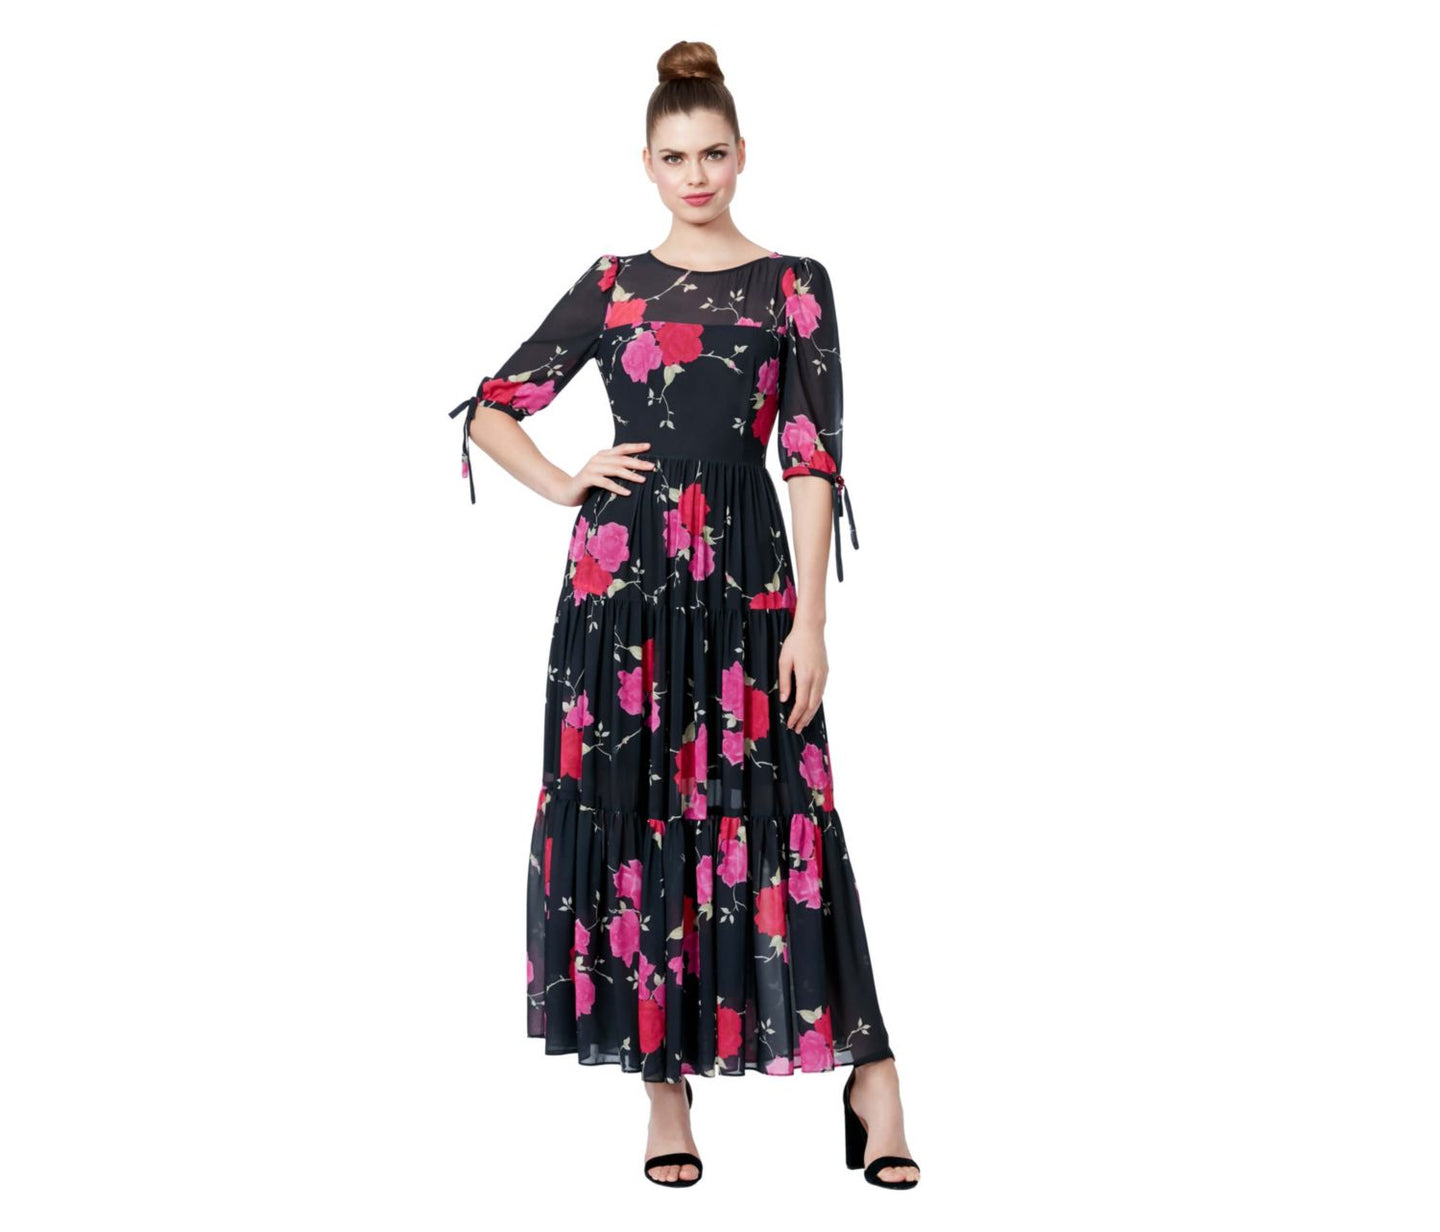 FLORAL TIERED MAXI DRESS BLACK-PINK - APPAREL - Betsey Johnson